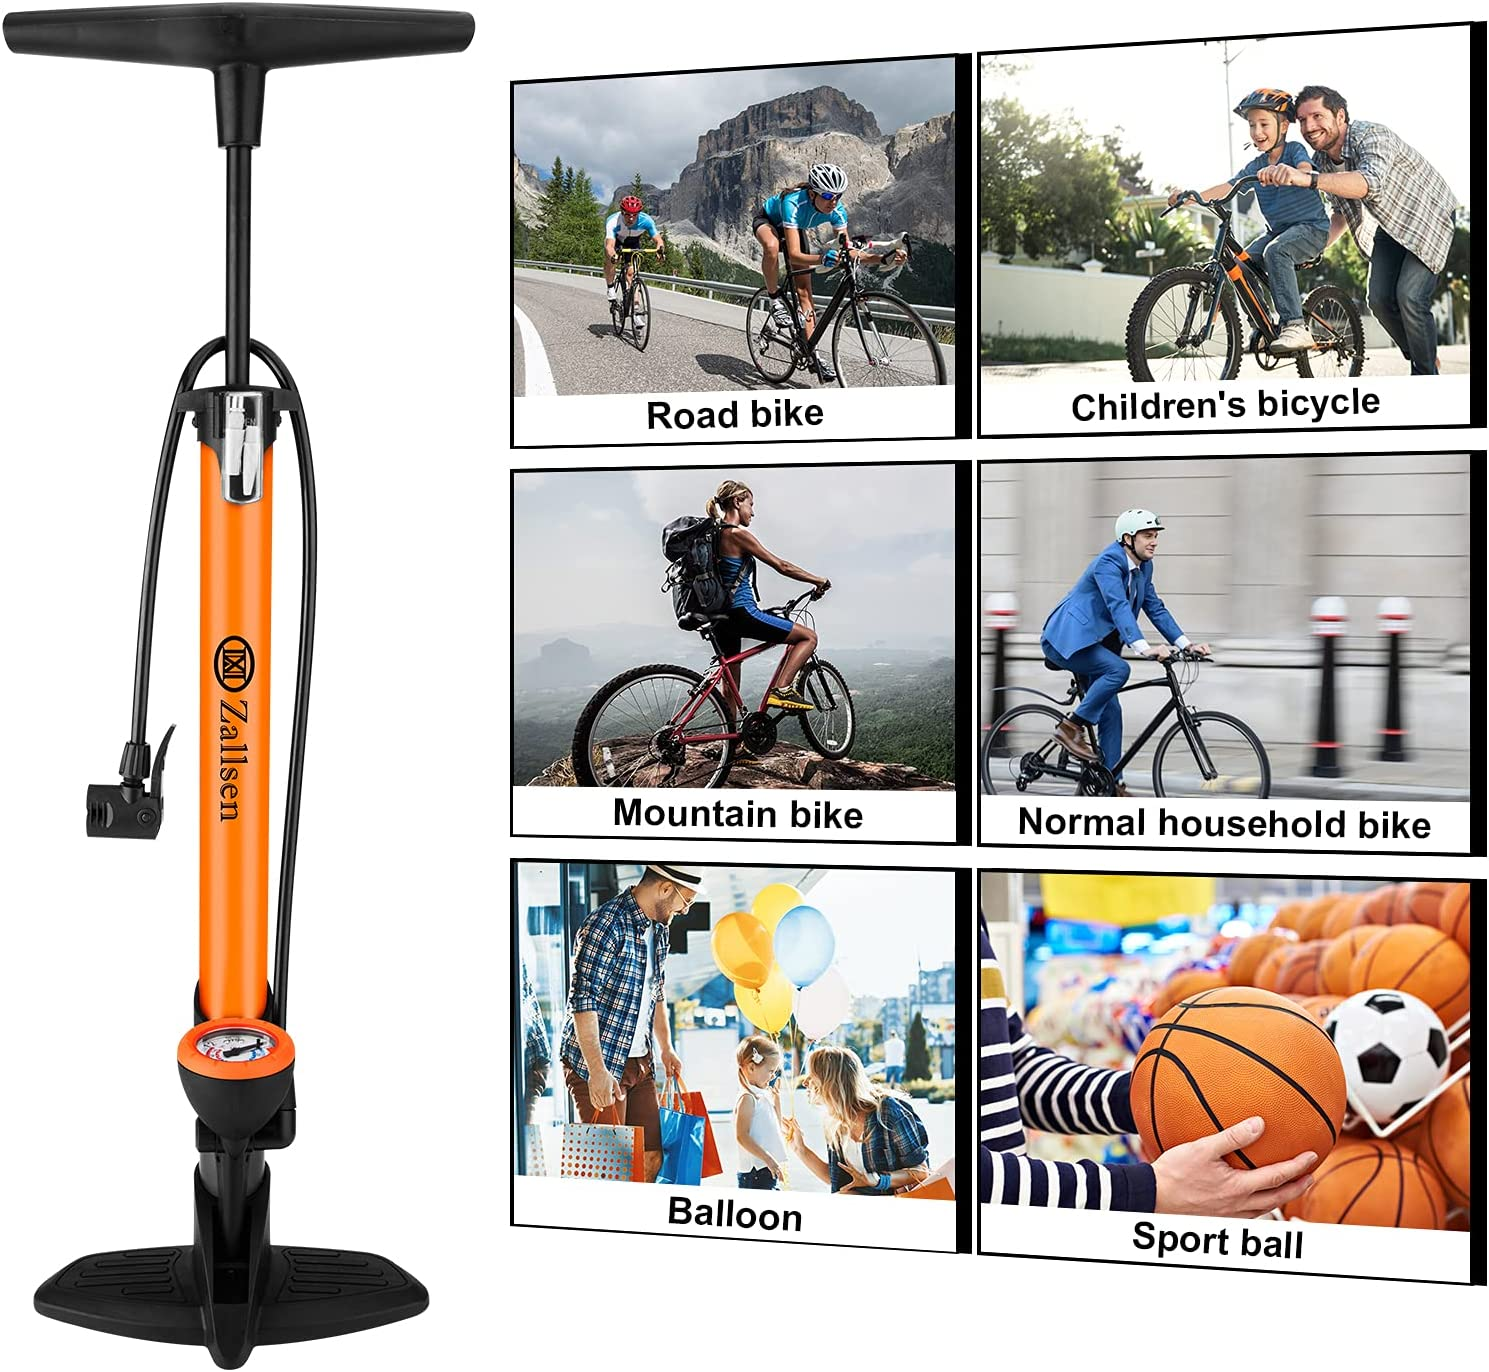 Zallsen Bike Pump High Pressure Ergonomic Bike Floor Pump with Pressure Gauge Fits Presta & Schrader with Max 160 PSI for Bikes, Balls and Inflatable Toys Quality Durable Easy to Use(Orange) : Sports & Outdoors